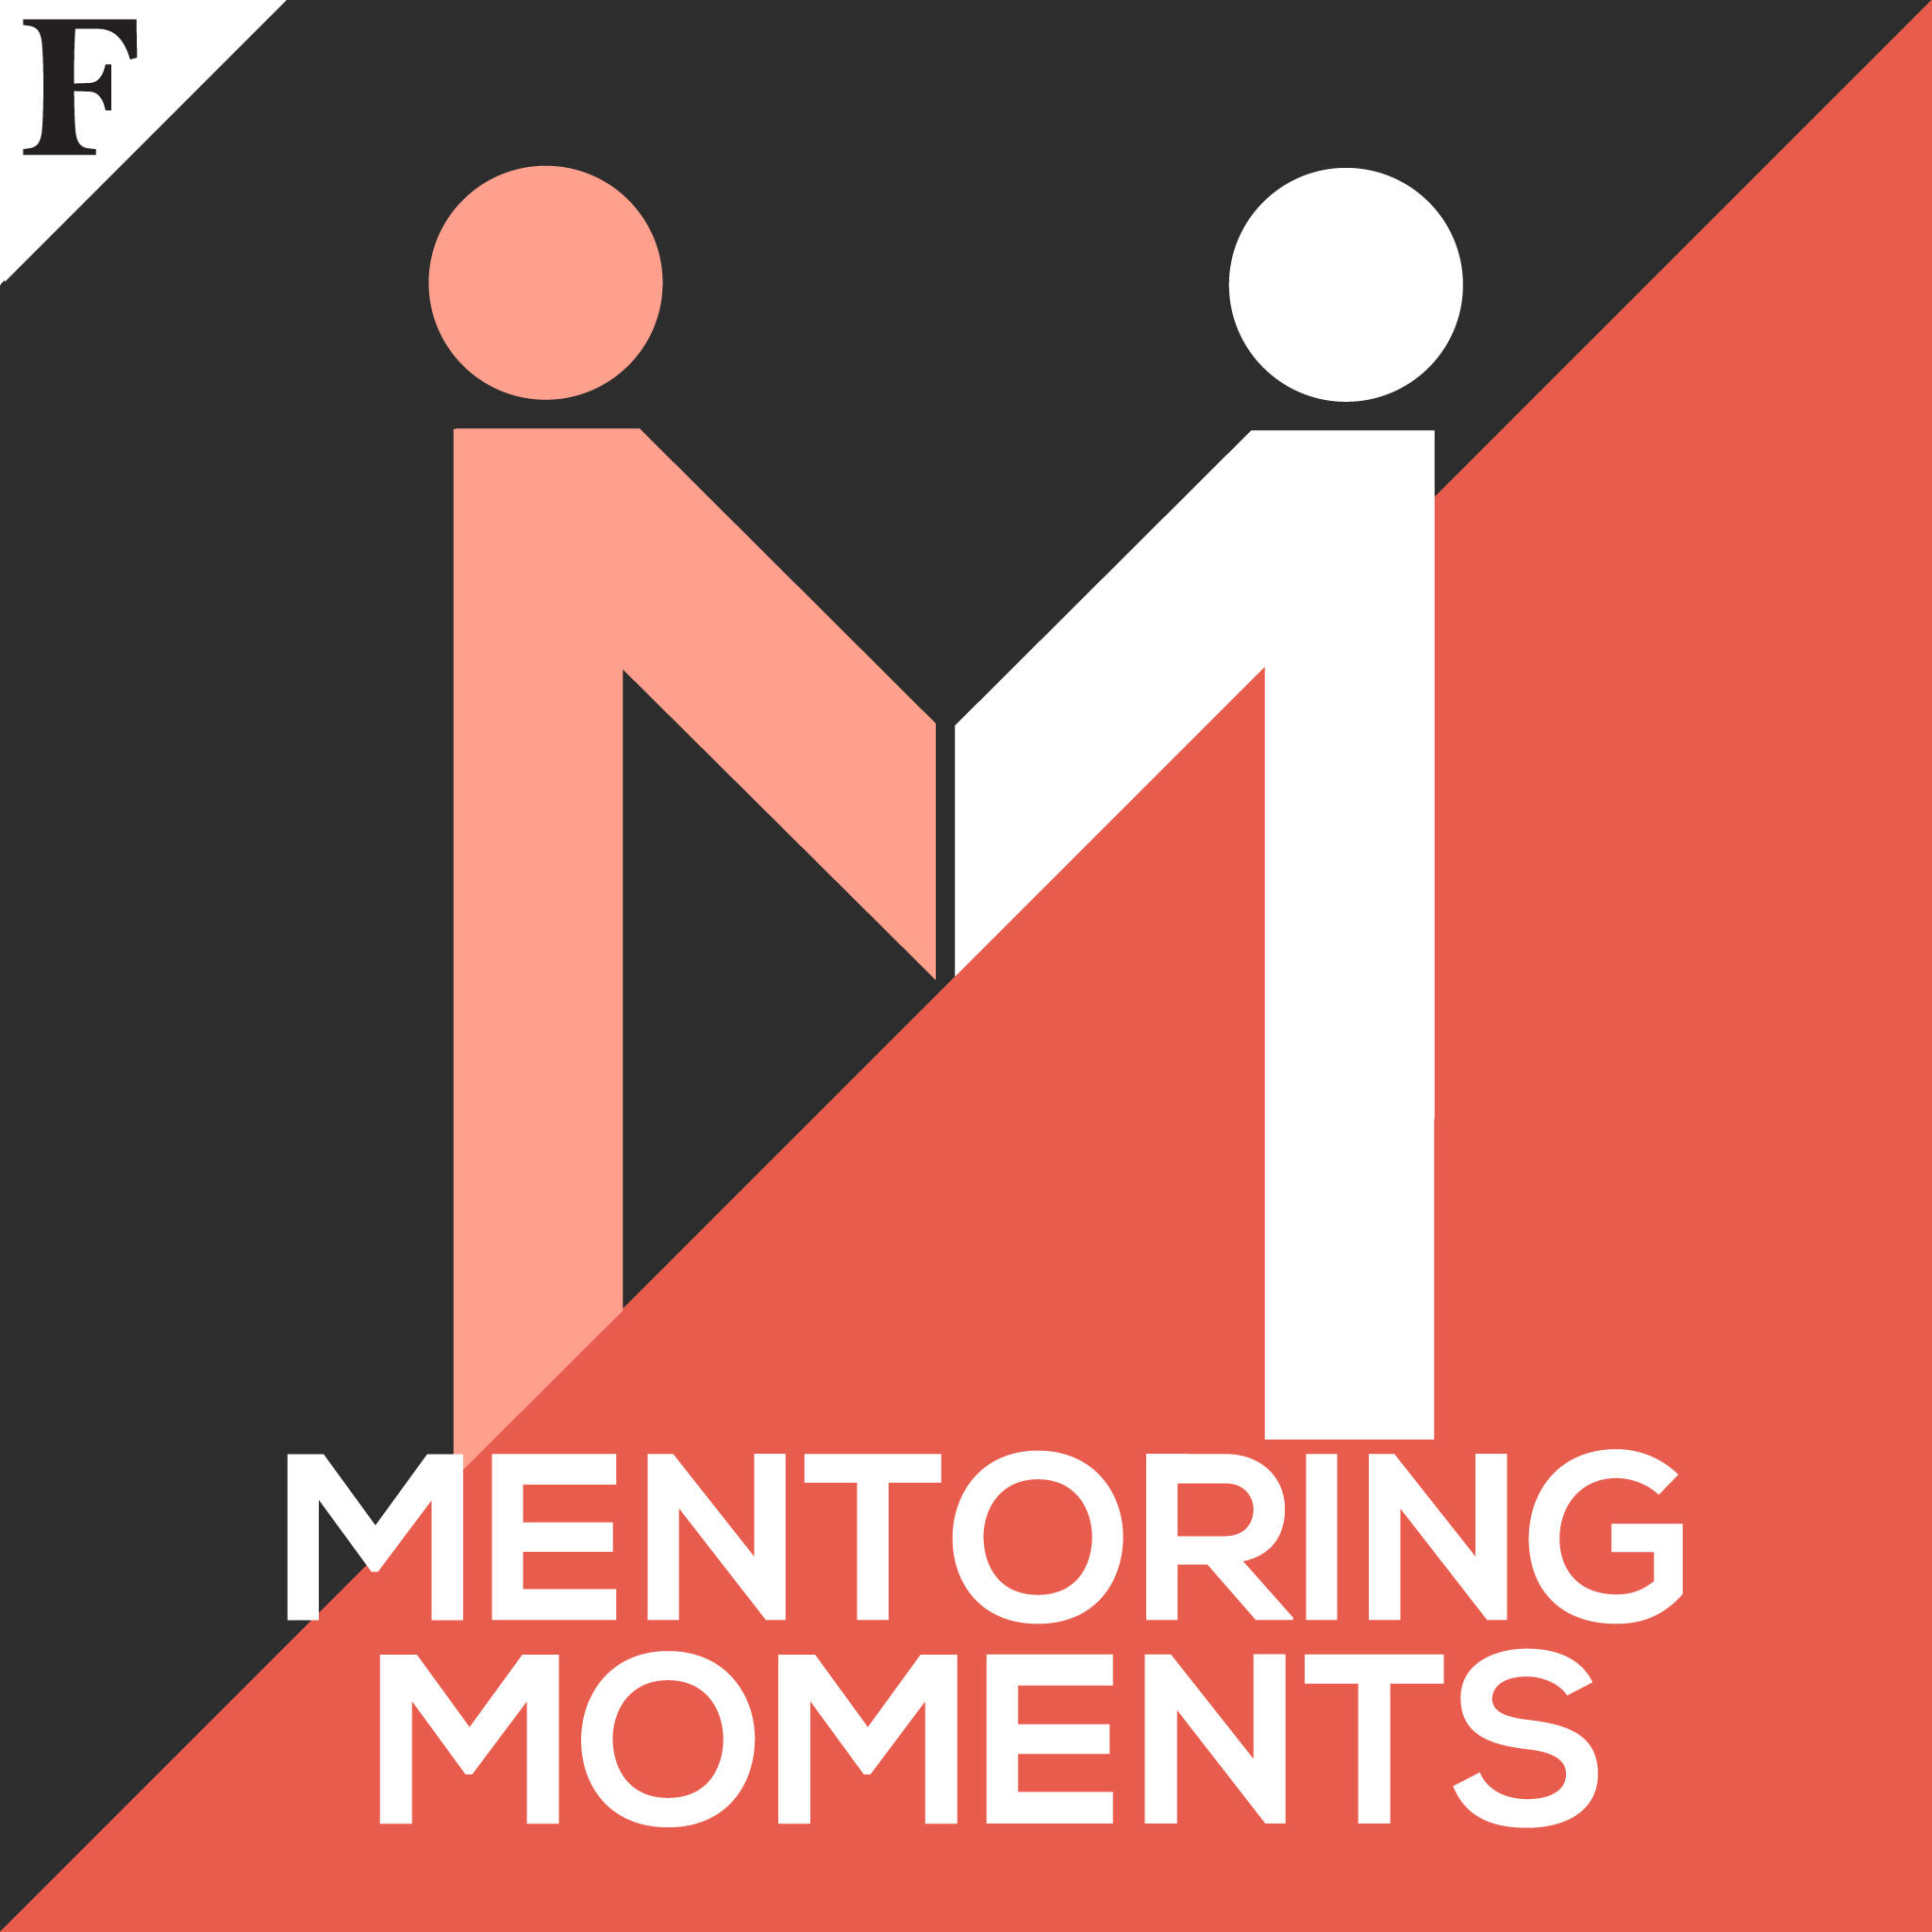 Mentoring Moments: Women You May Never Meet Will Become Your Mentors